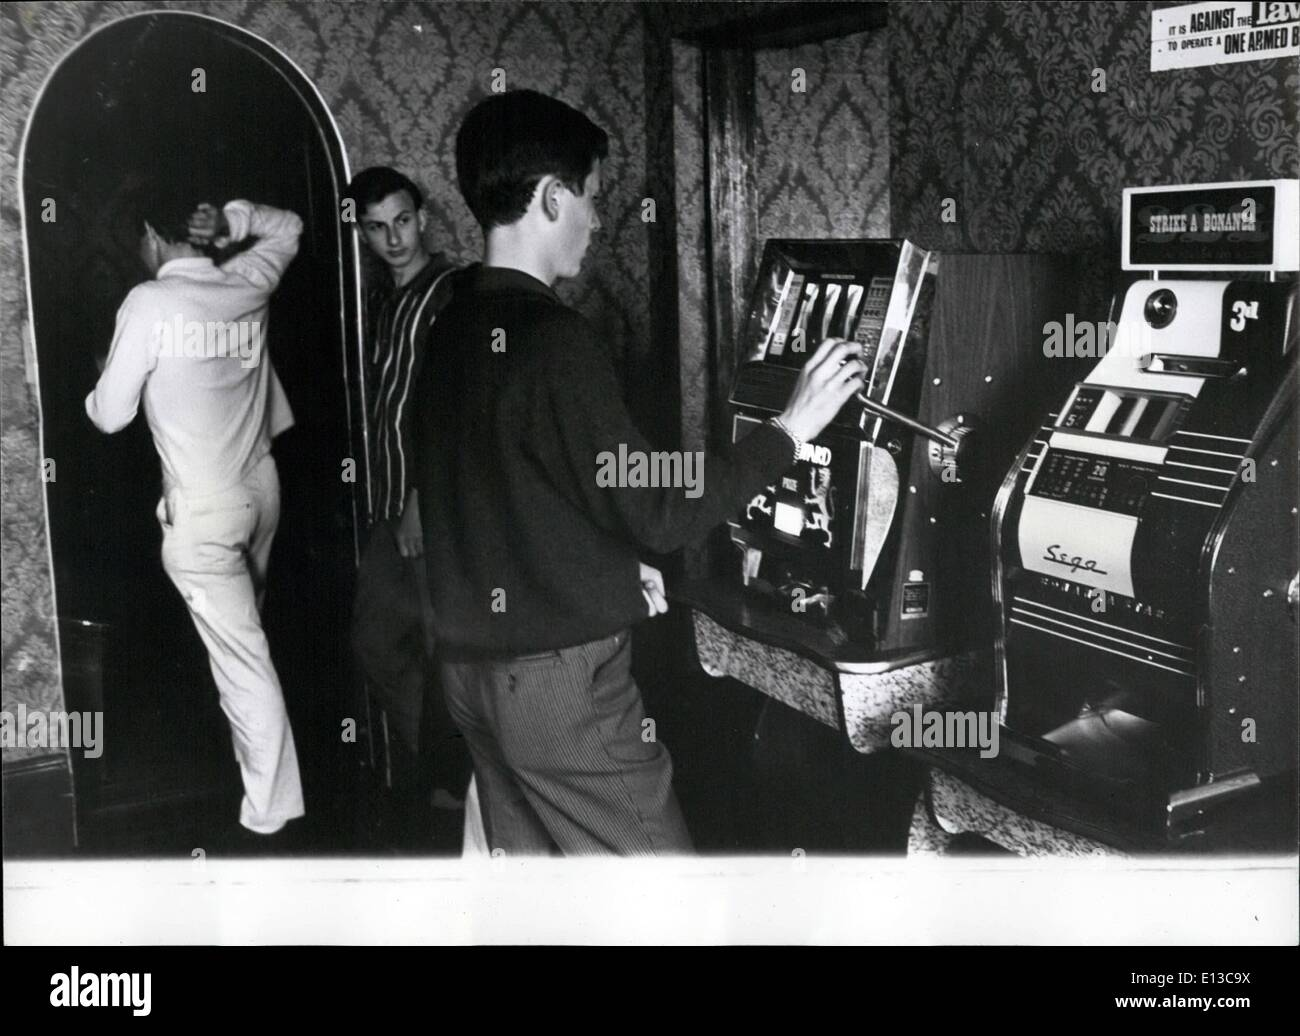 Mar. 02, 2012 - Fruit machines slake thirst for gambling and thrills of chance. APRESS - Stock Image